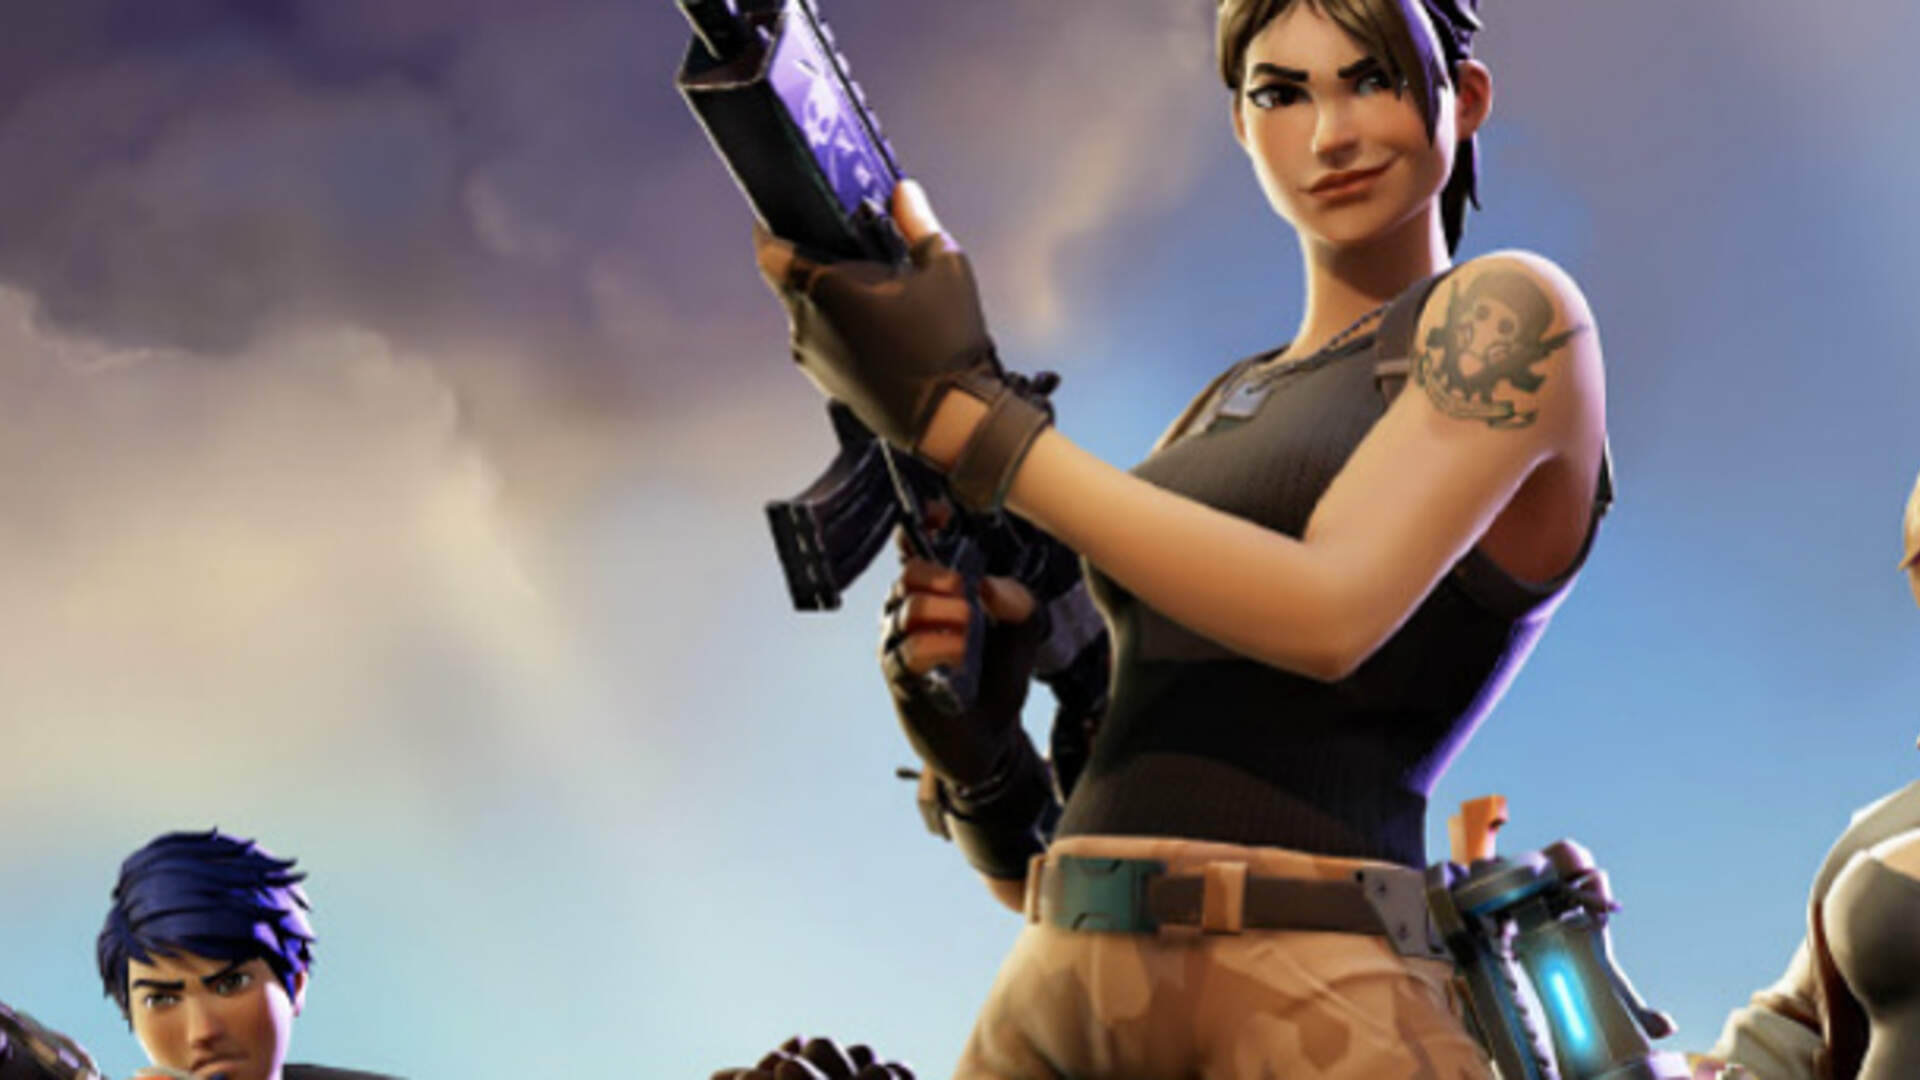 Epic Investigates Reports of Cheating in Fortnite's Summer Skirmish Event